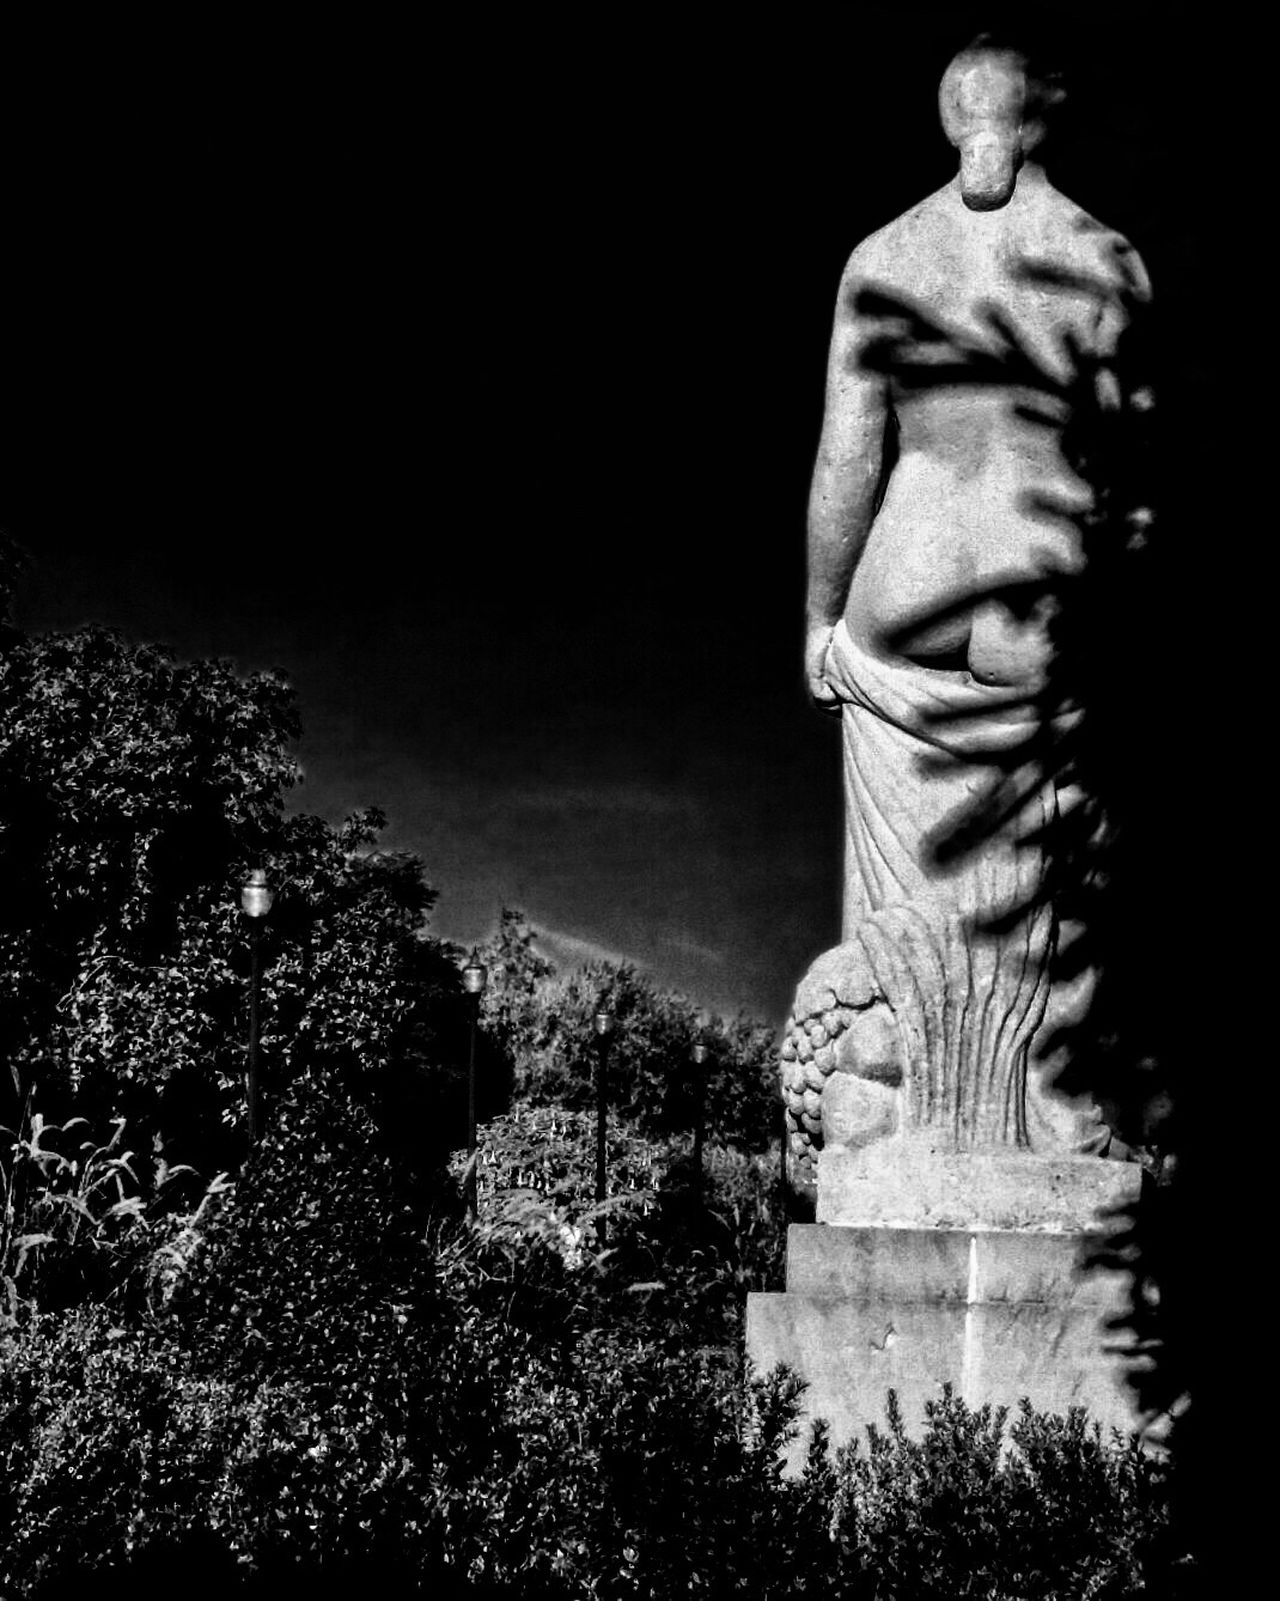 Statue Human Representation Art And Craft Sculpture No People Outdoors Sky Day Blackandwhite Photography Streetphoto_bw Blackandwhite Barcelona Bnw_captures Bnw_collection EyeEm Gallery Streetphotography